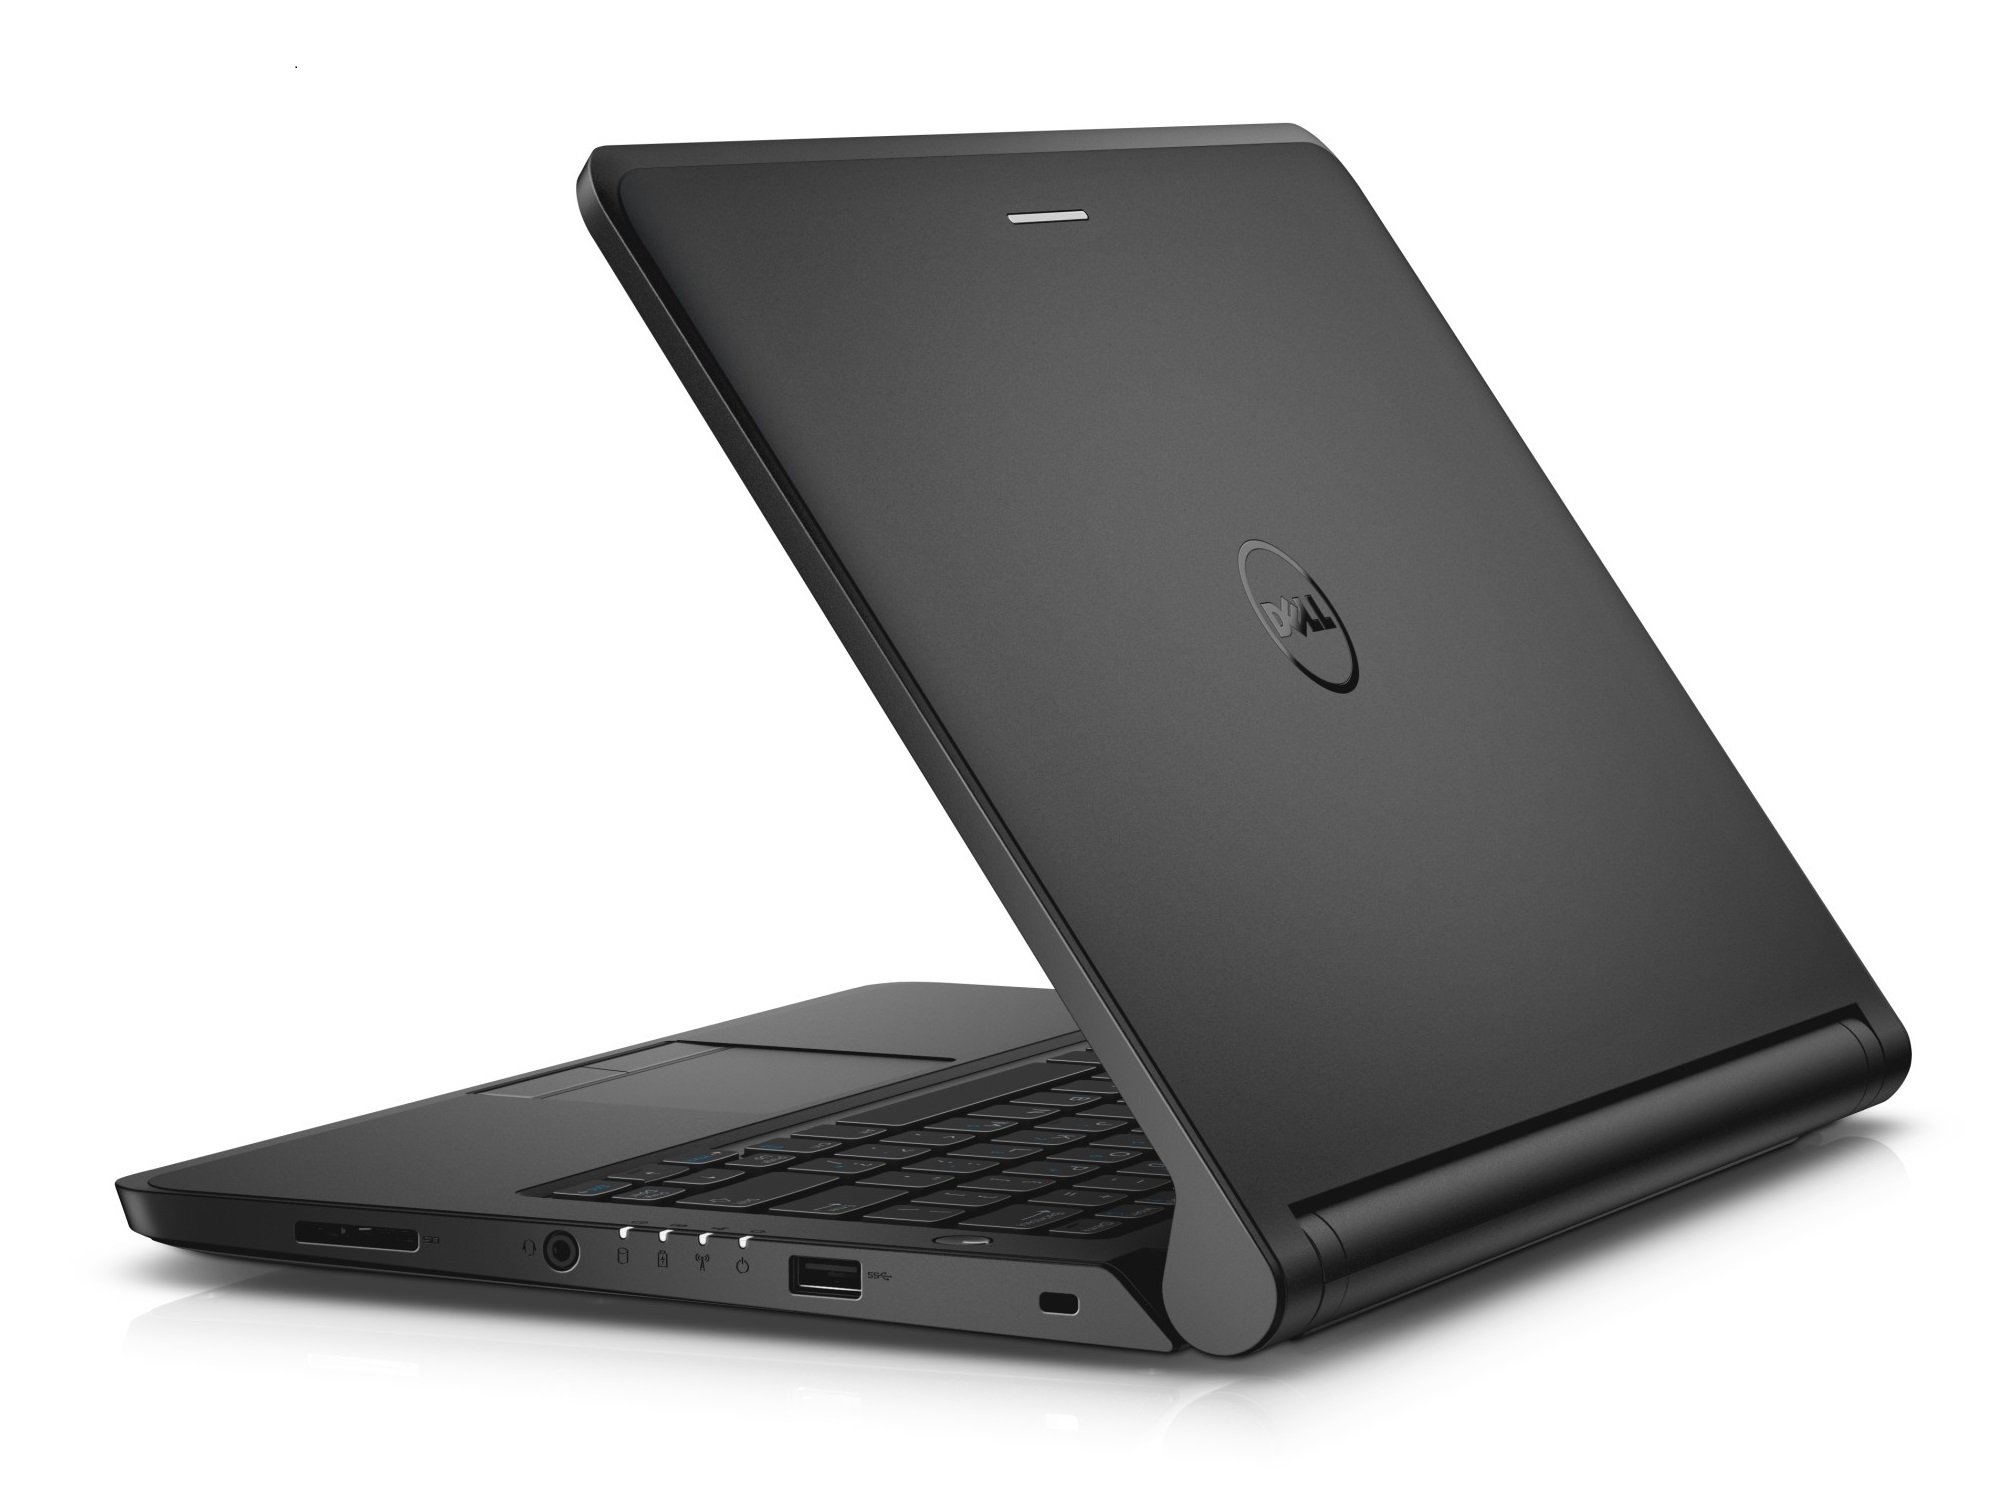 "DELL Latitude 3350/i5-5200U/8GB/128GB SSD/Intel HD 5500/13.3"" HD/Win 10Pro 64bit/No backlit kb/Black"